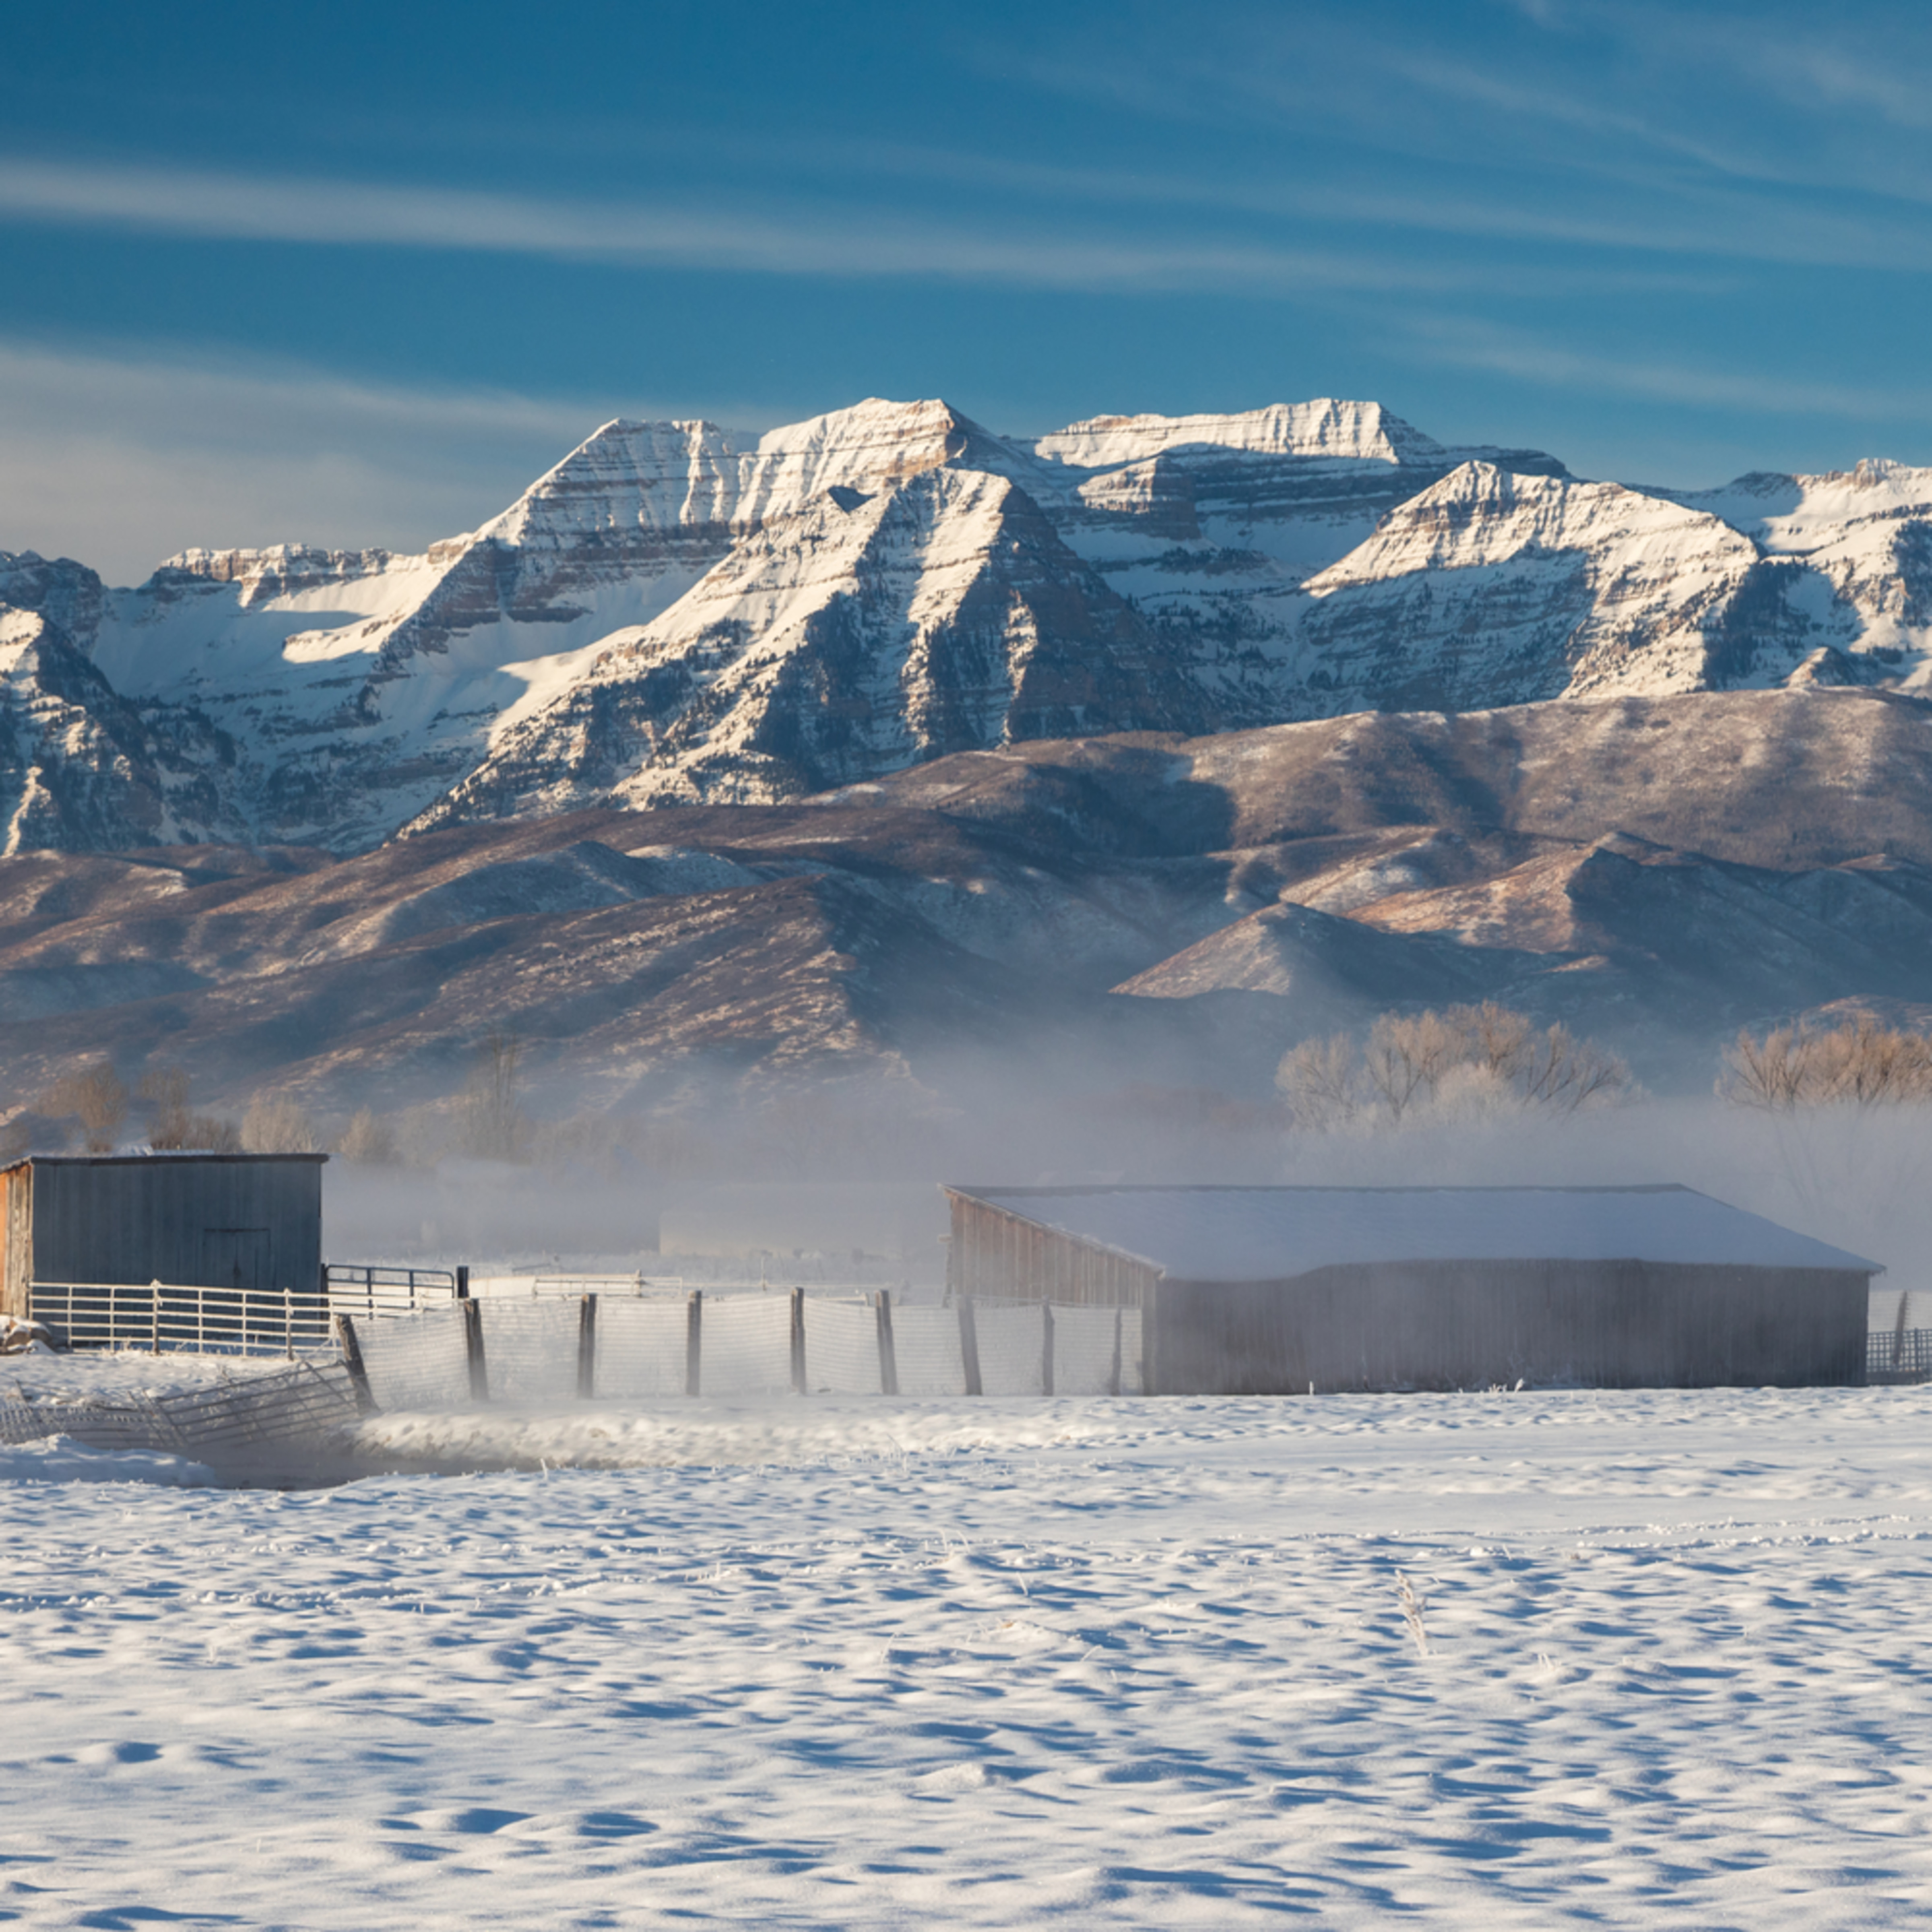 Frosty barns with timp chlvlj